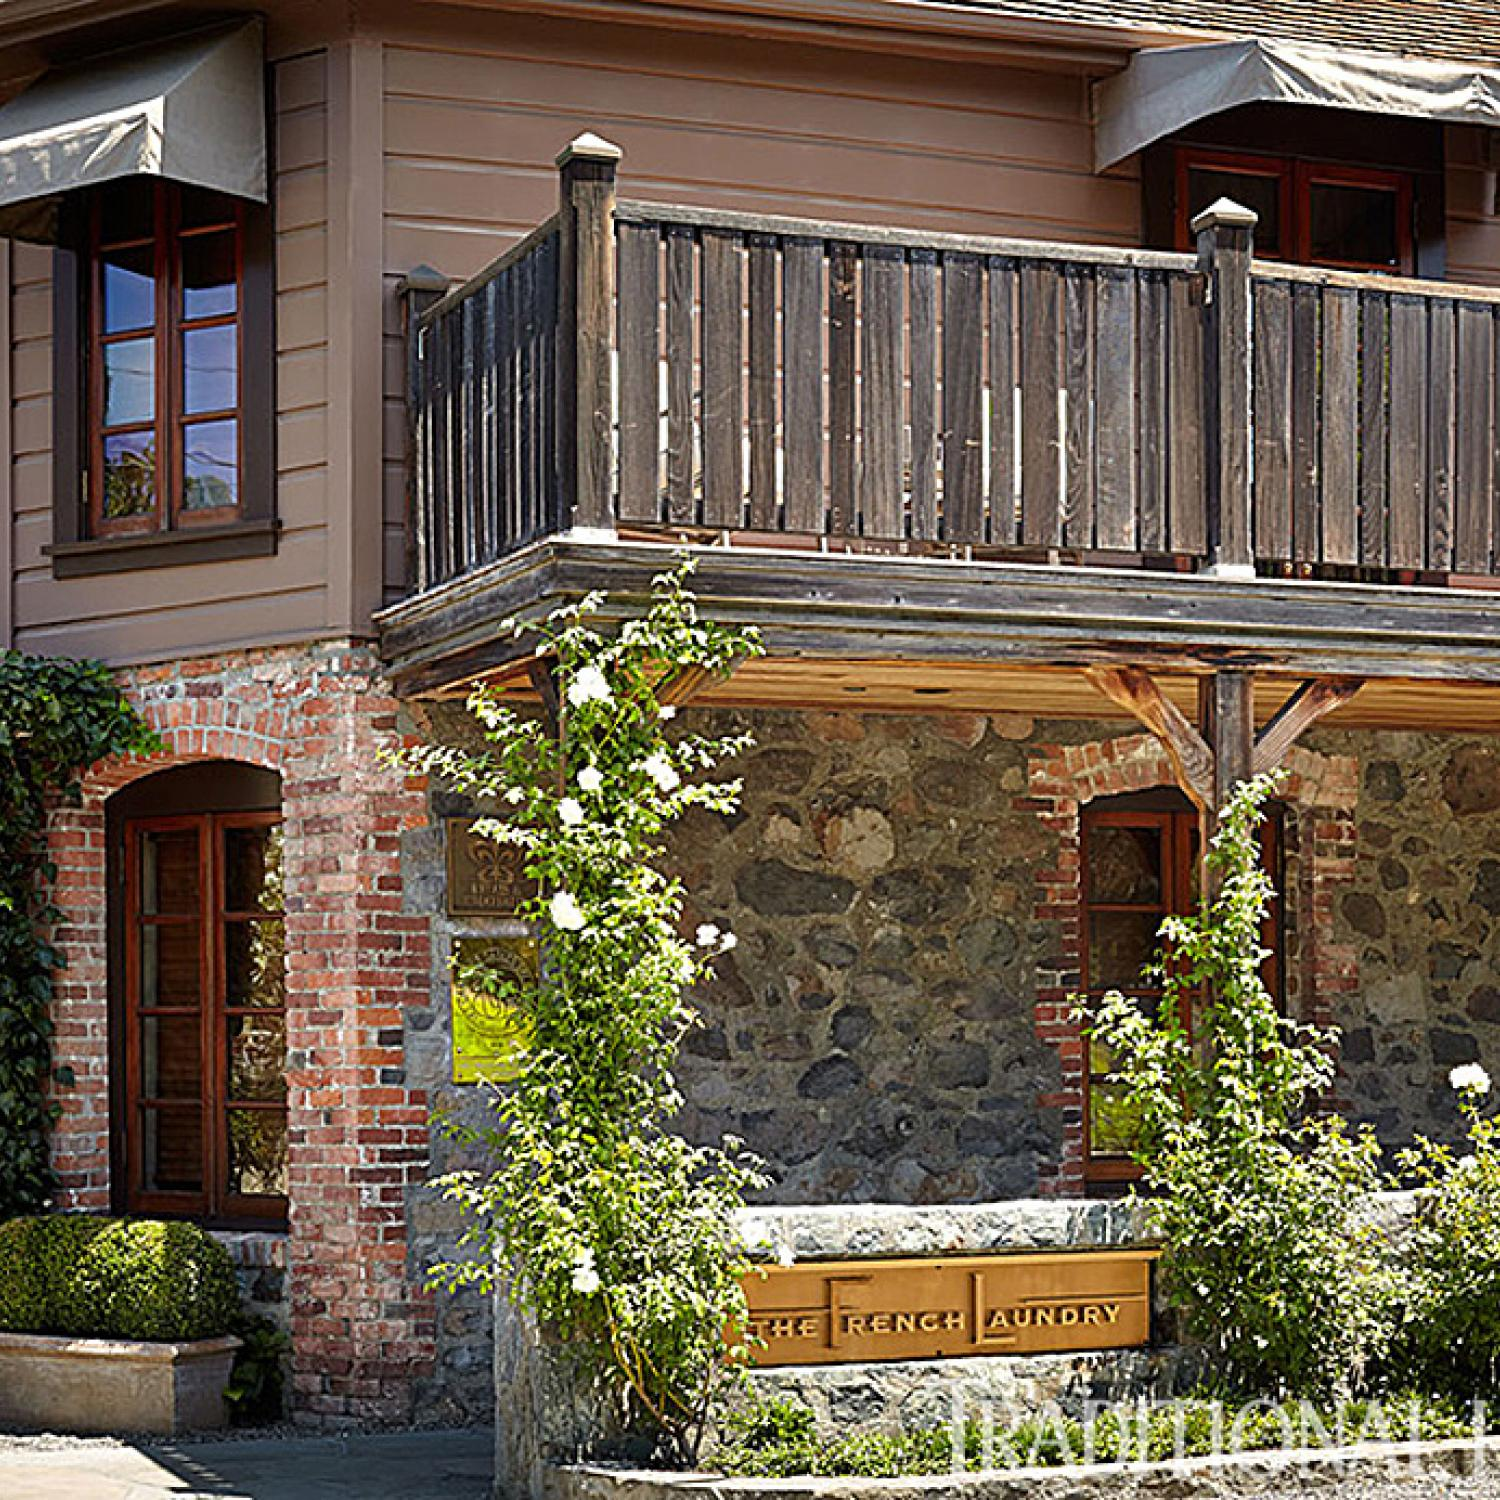 Cooking School: The French Laundry | Traditional Home